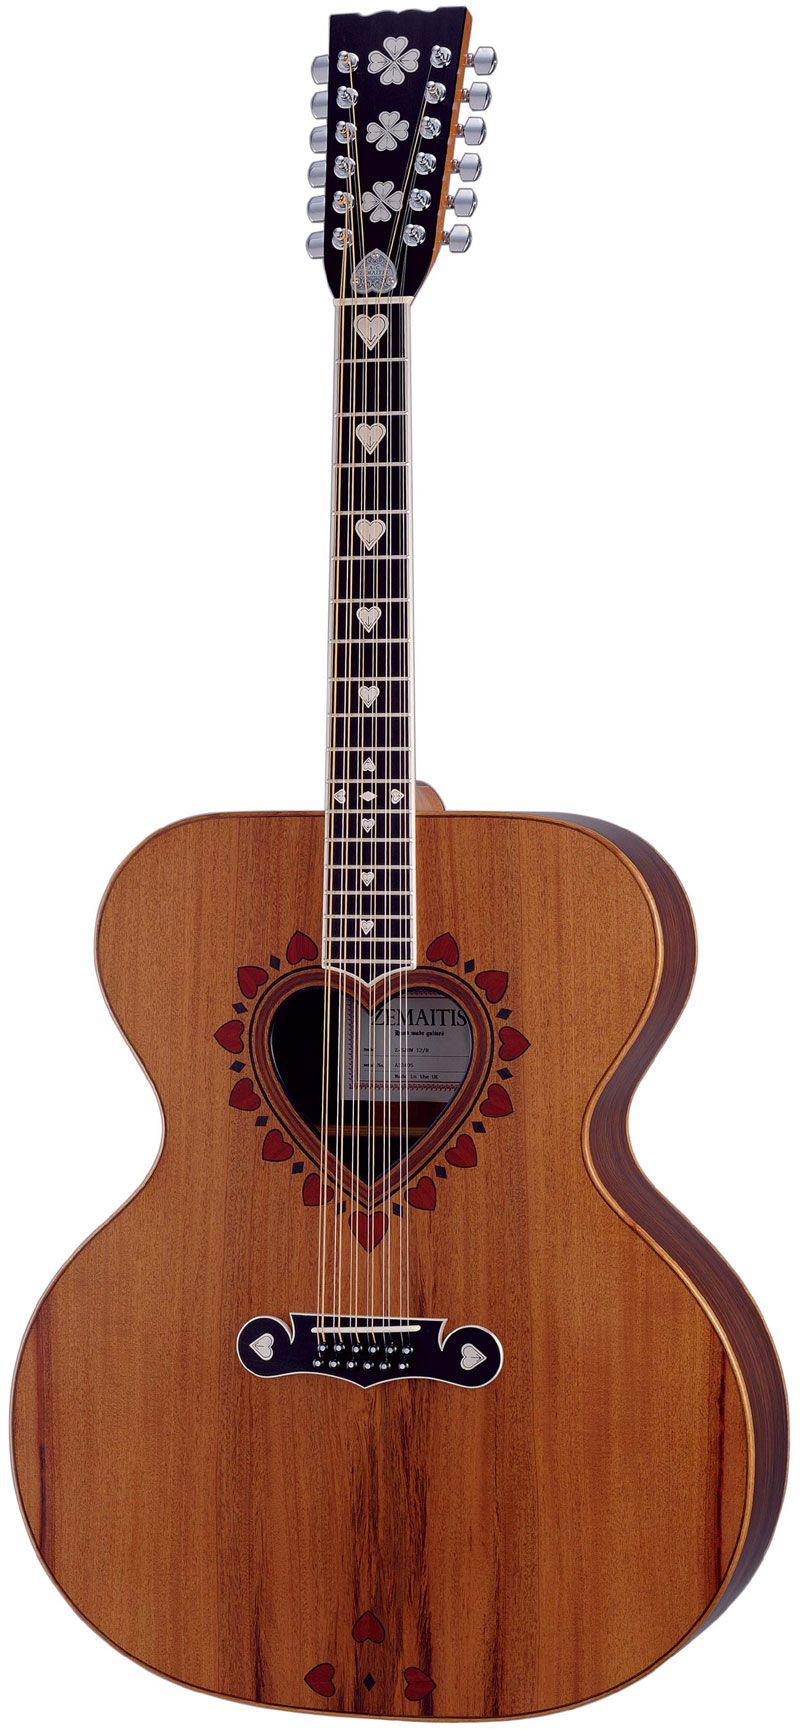 Zemaitis Z-SJHW 12-string acoustic guitar with heart shaped soundhole.